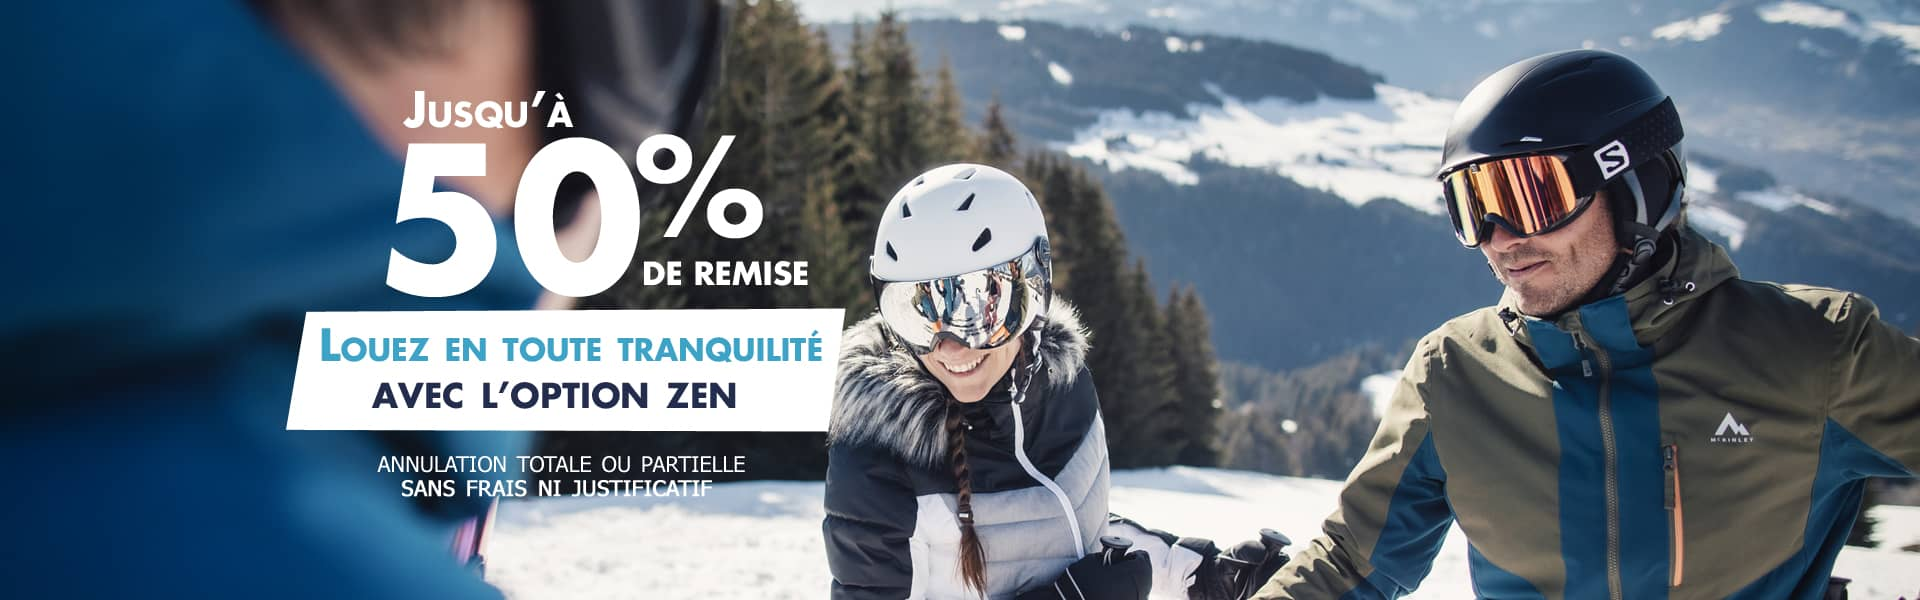 Location ski Intersport La Plagne Montalbert, Savoie